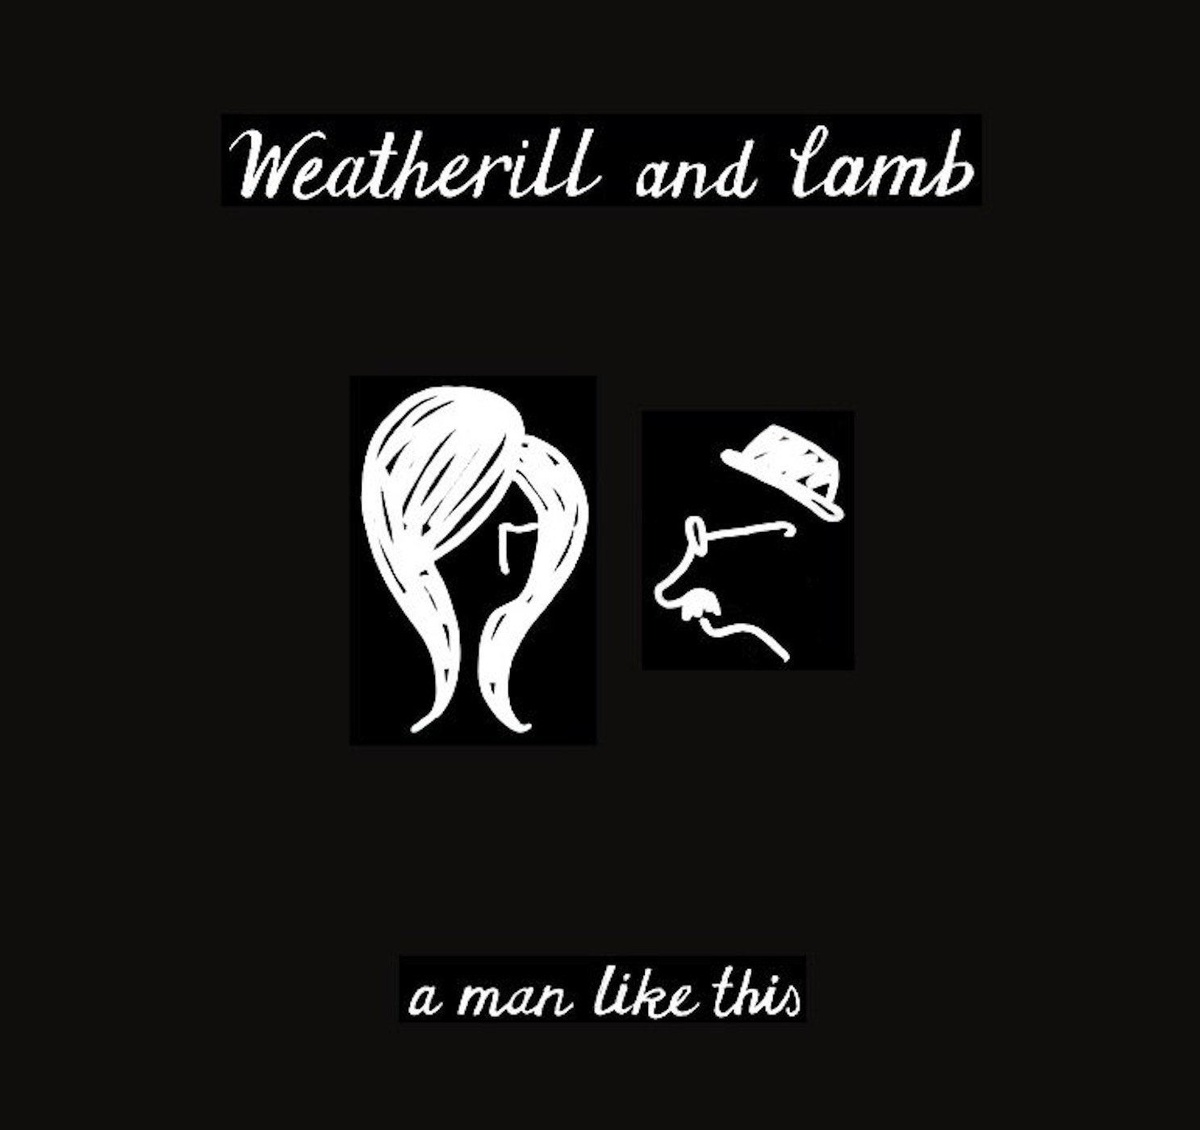 album cover for a man like this